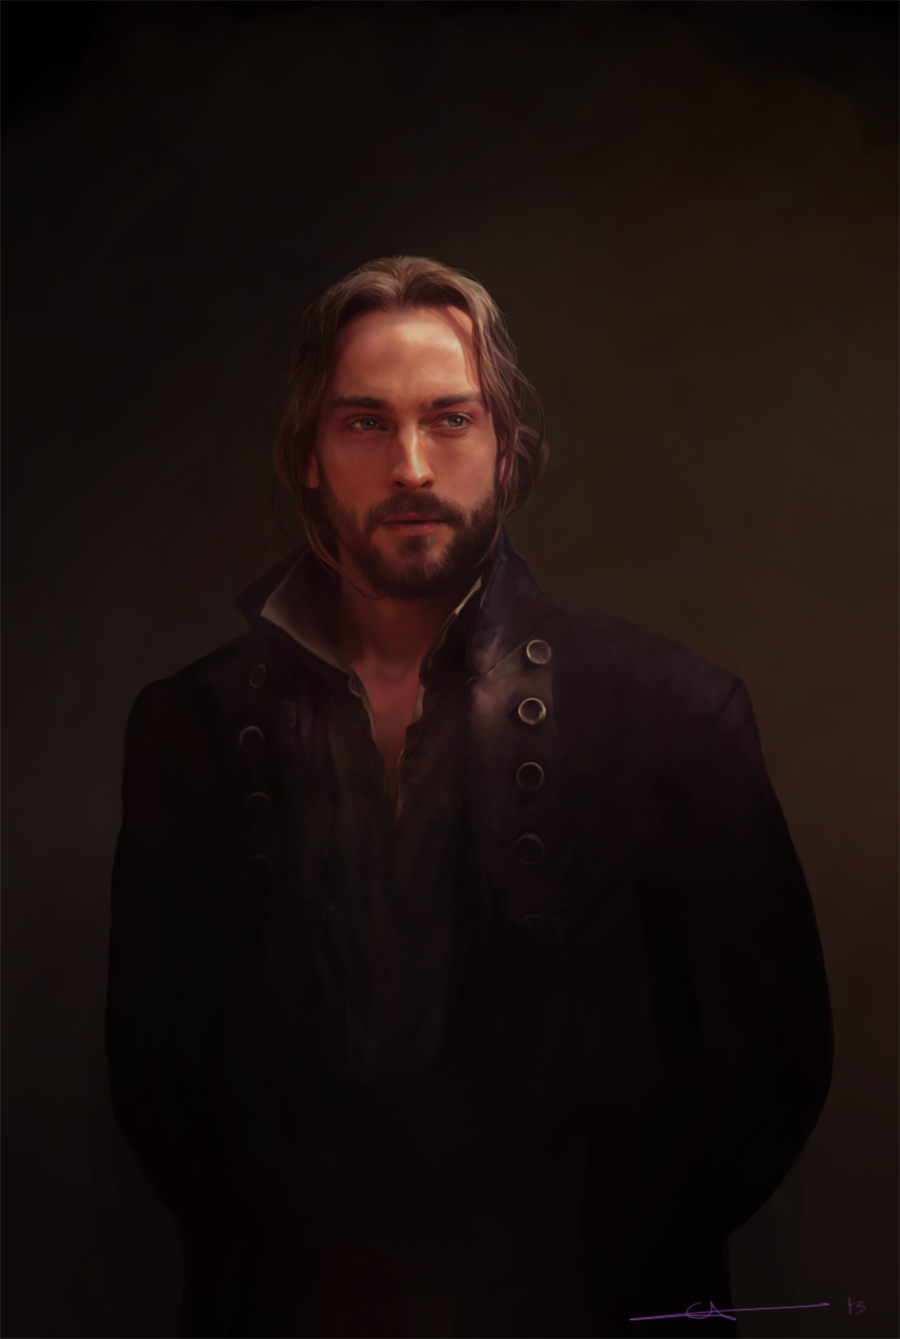 Ichabod by euclase.deviantart.com on @deviantART